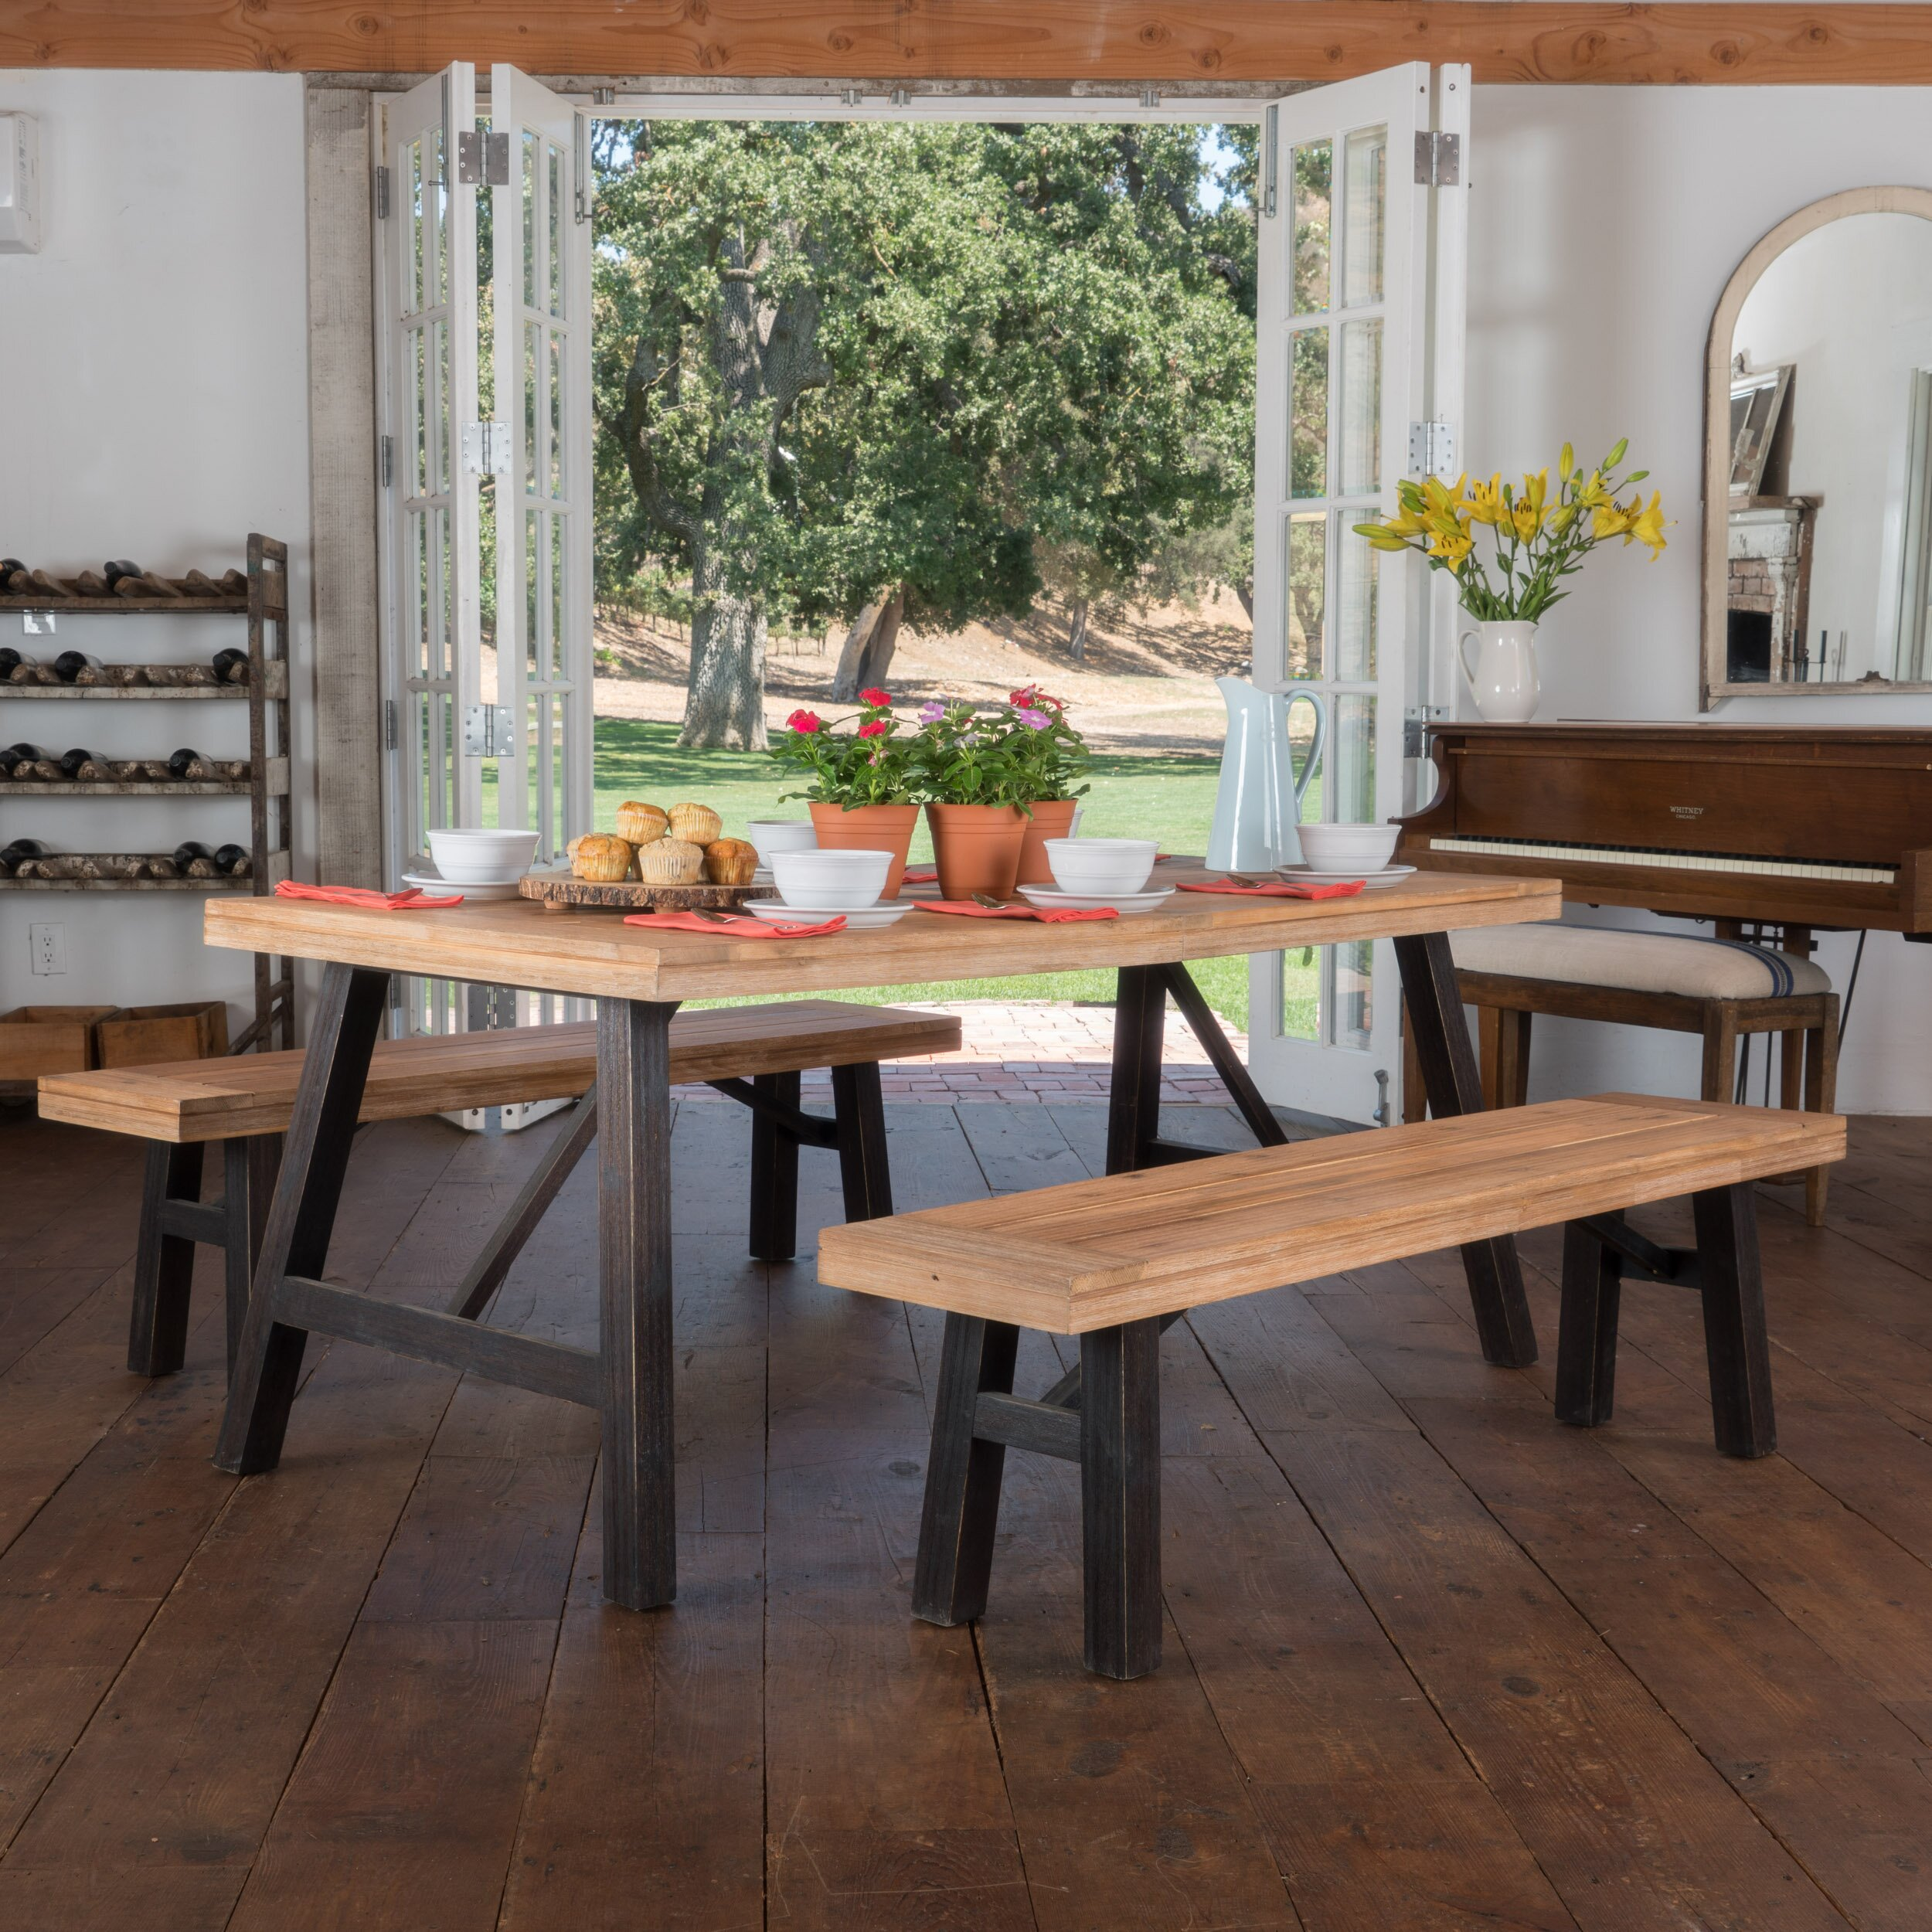 3 Piece Dining Room Set: Laurel Foundry Modern Farmhouse Guillaume 3 Piece Dining